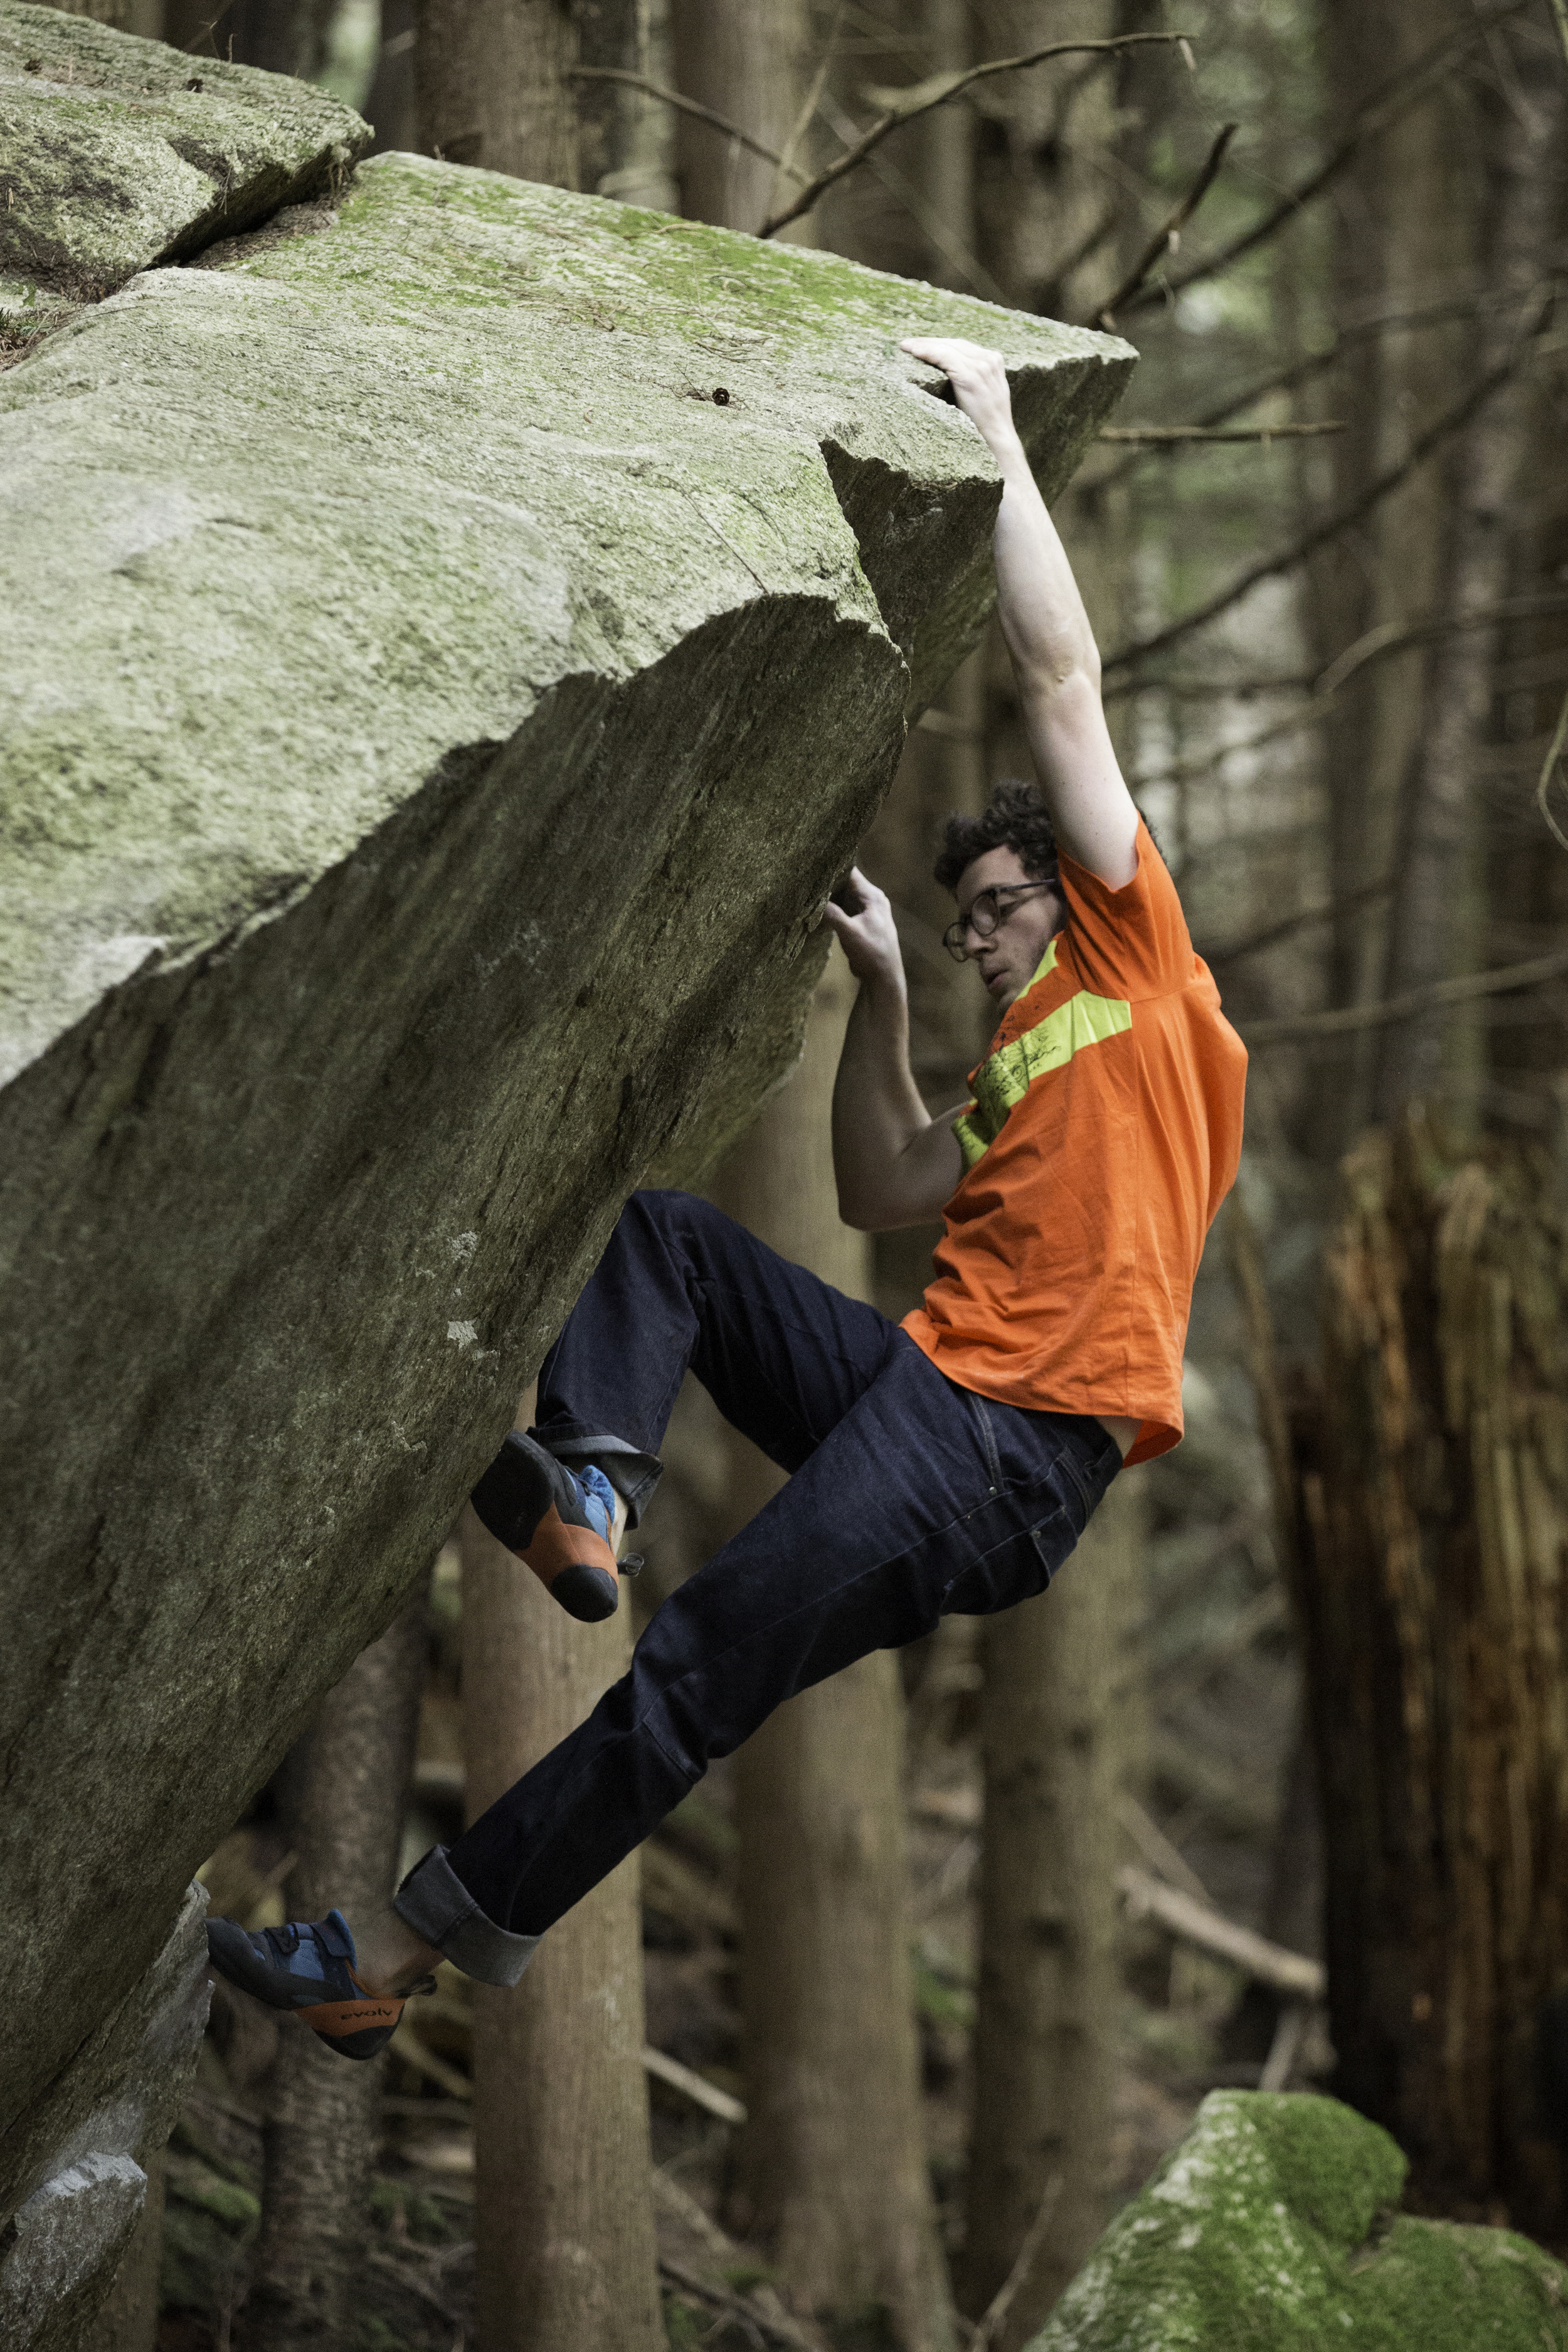 Mason Pitchell on 'Missing in Action' v8, Squamish BC, Canada.